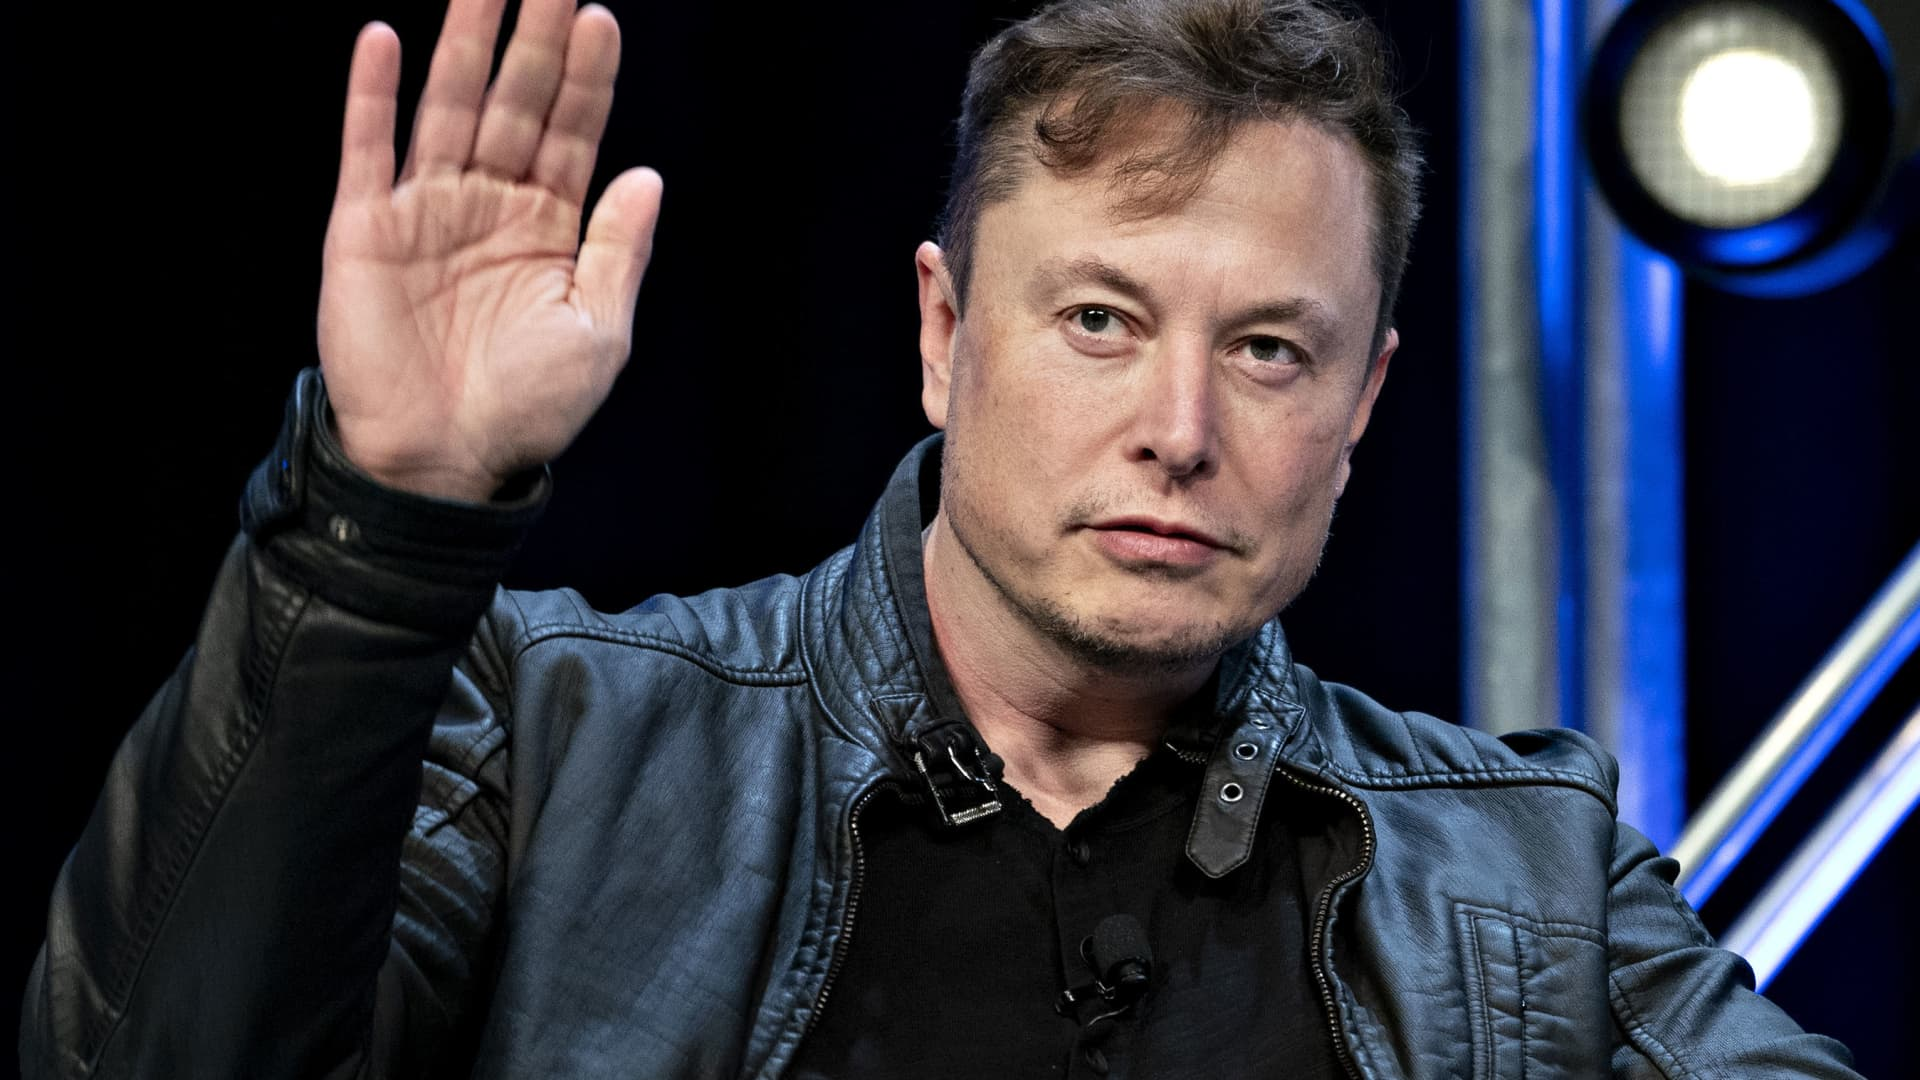 Elon Musk, founder of SpaceX and chief executive officer of Tesla, waves while arriving to a discussion at the Satellite 2020 Conference in Washington, D.C., on Monday, March 9, 2020.